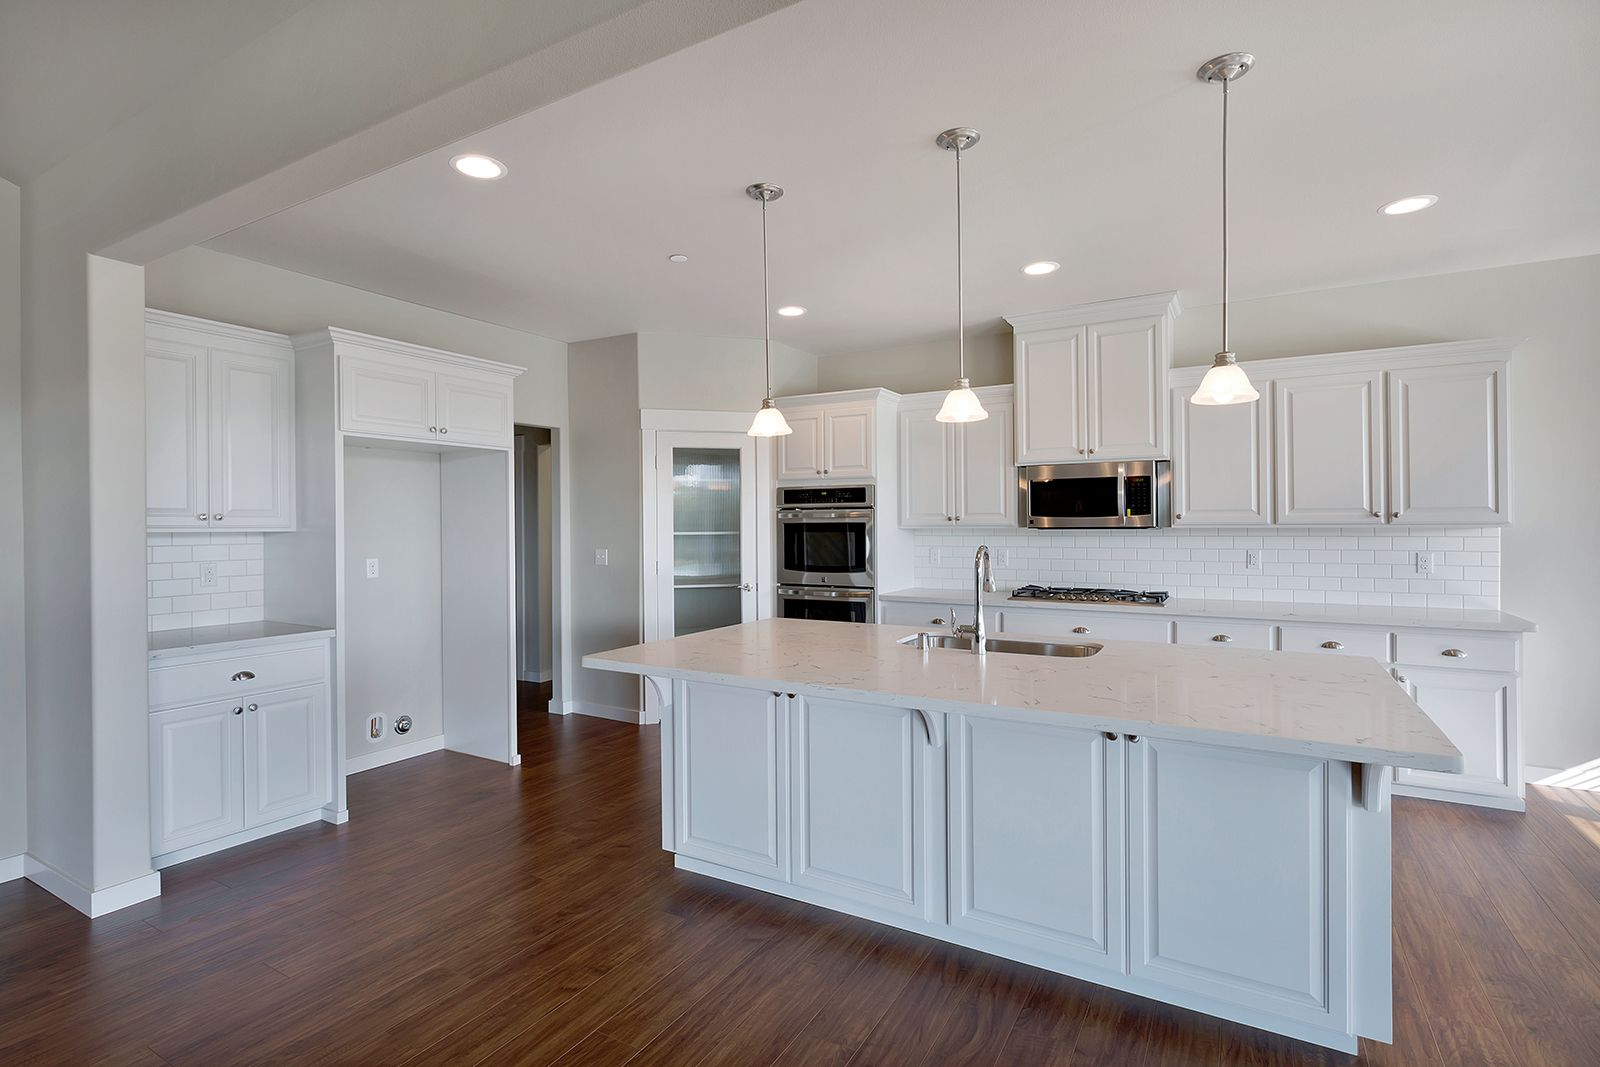 This exquisite classic style kitchen features white maple cabinets this exquisite classic style kitchen features white maple cabinets ohana quartz counters white subway tile backsplash with a medium gray grout and dailygadgetfo Images